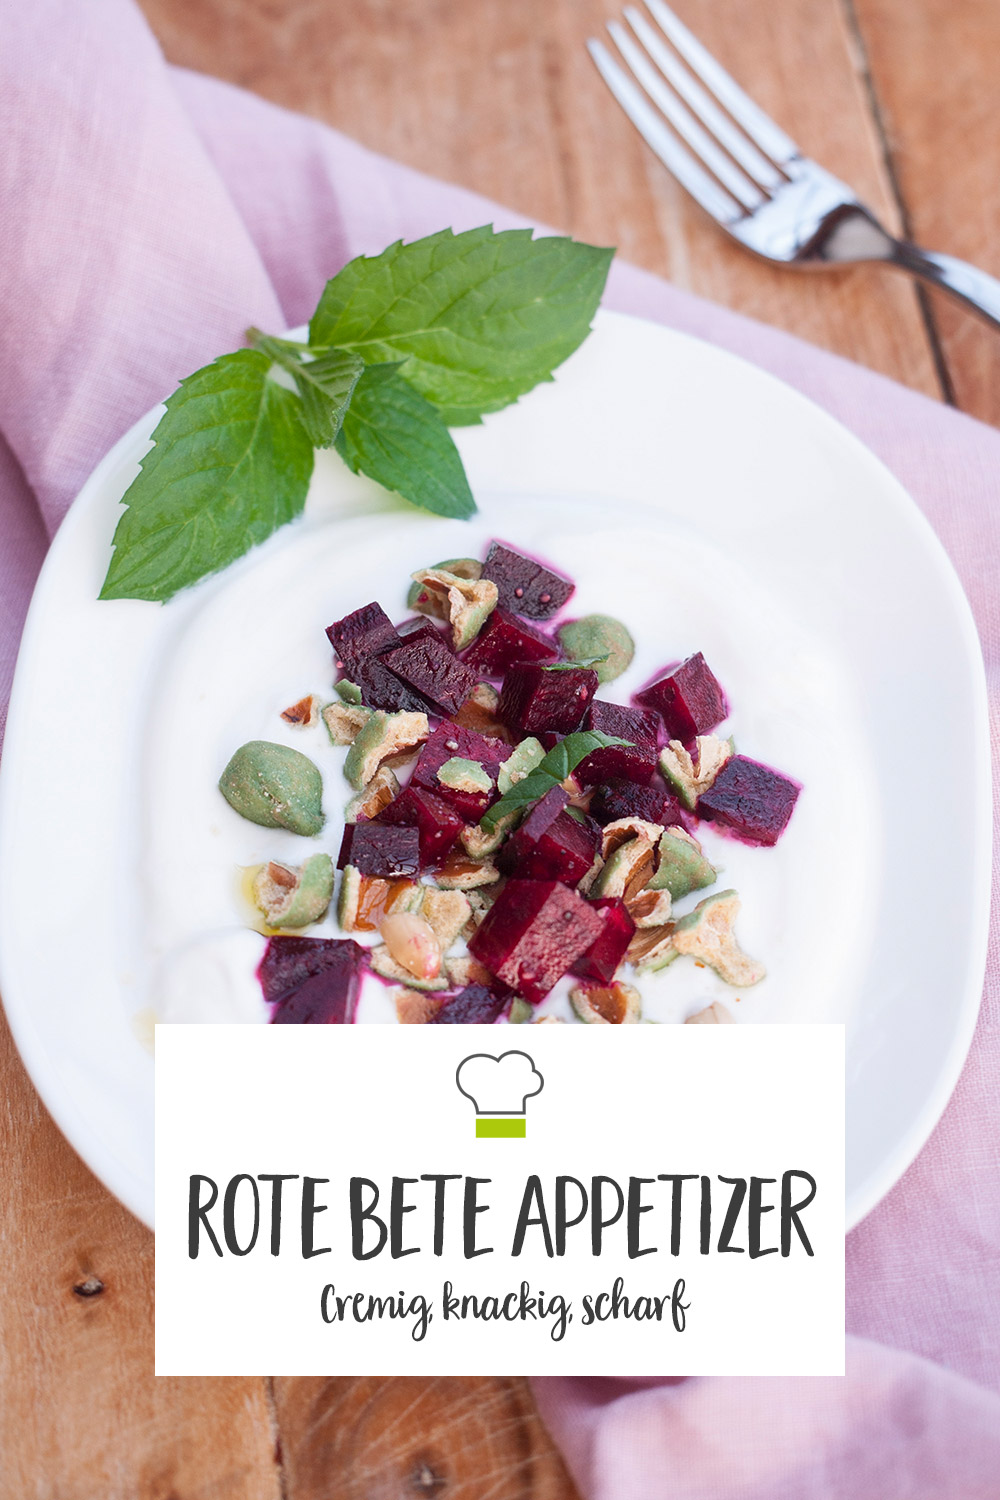 Rote Bete Appetizer